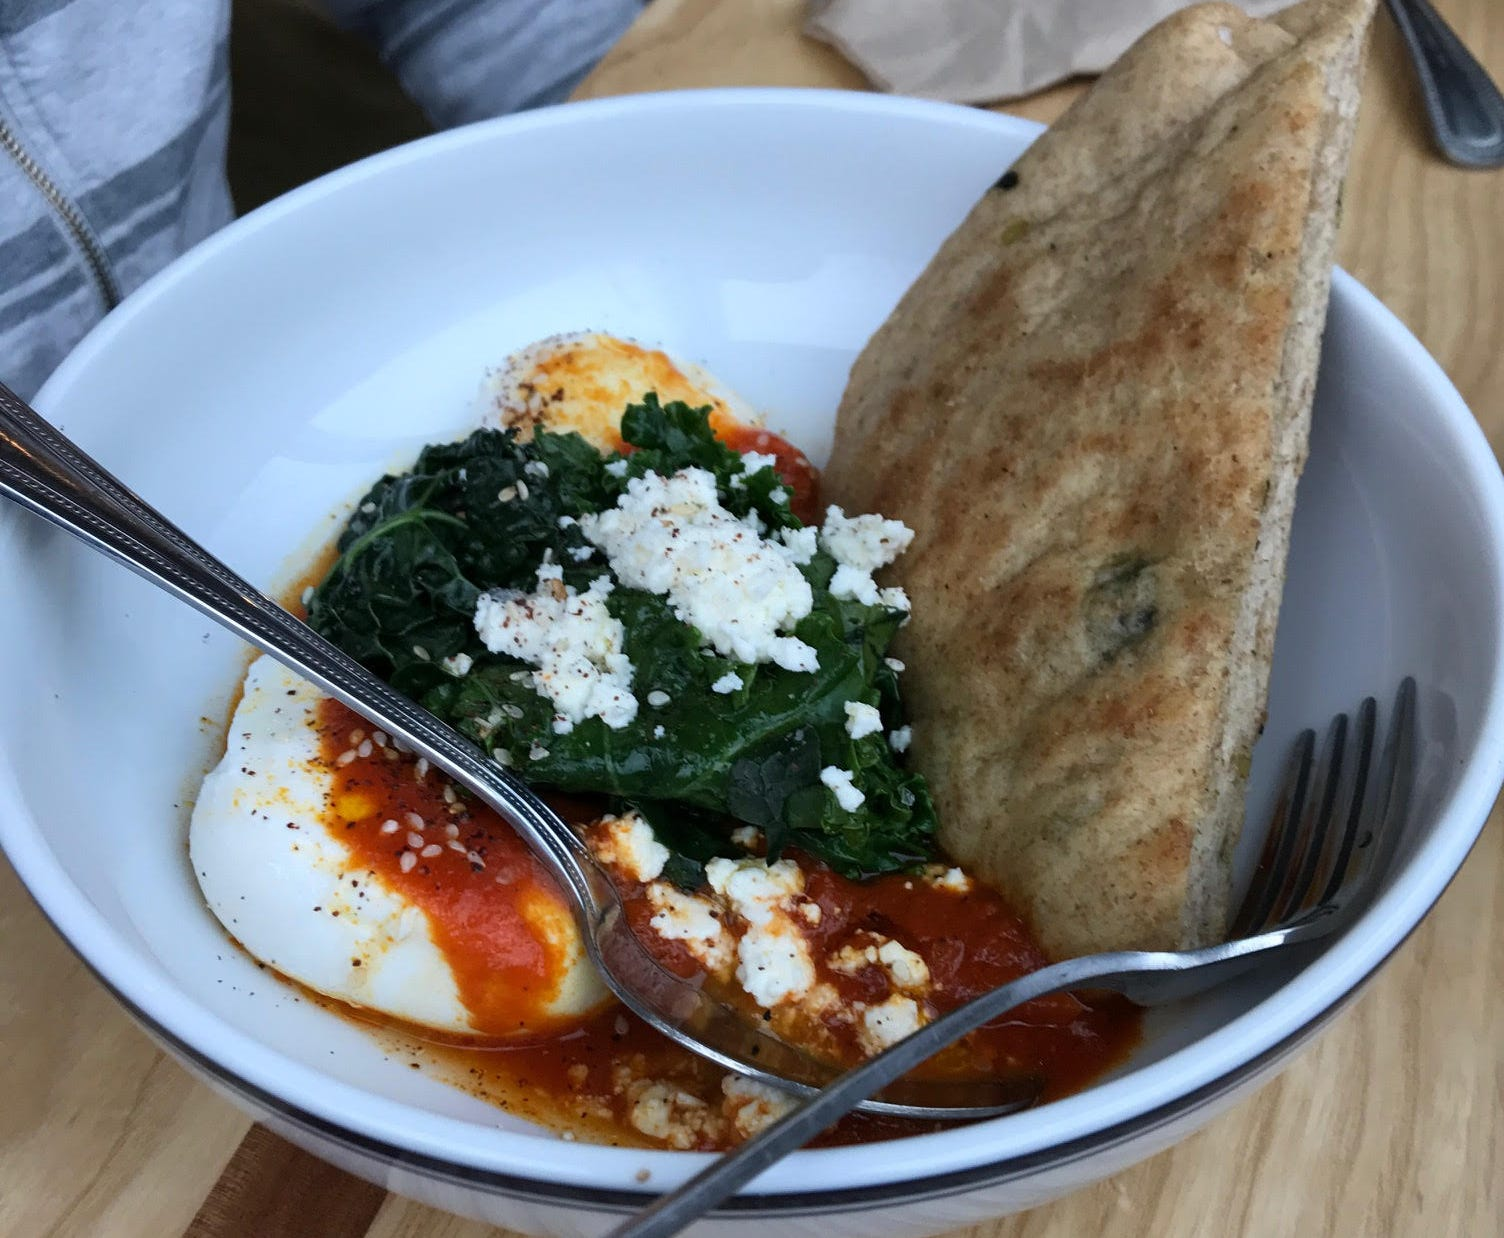 Shakshuka with feta, greens and a wedge of flatbread.